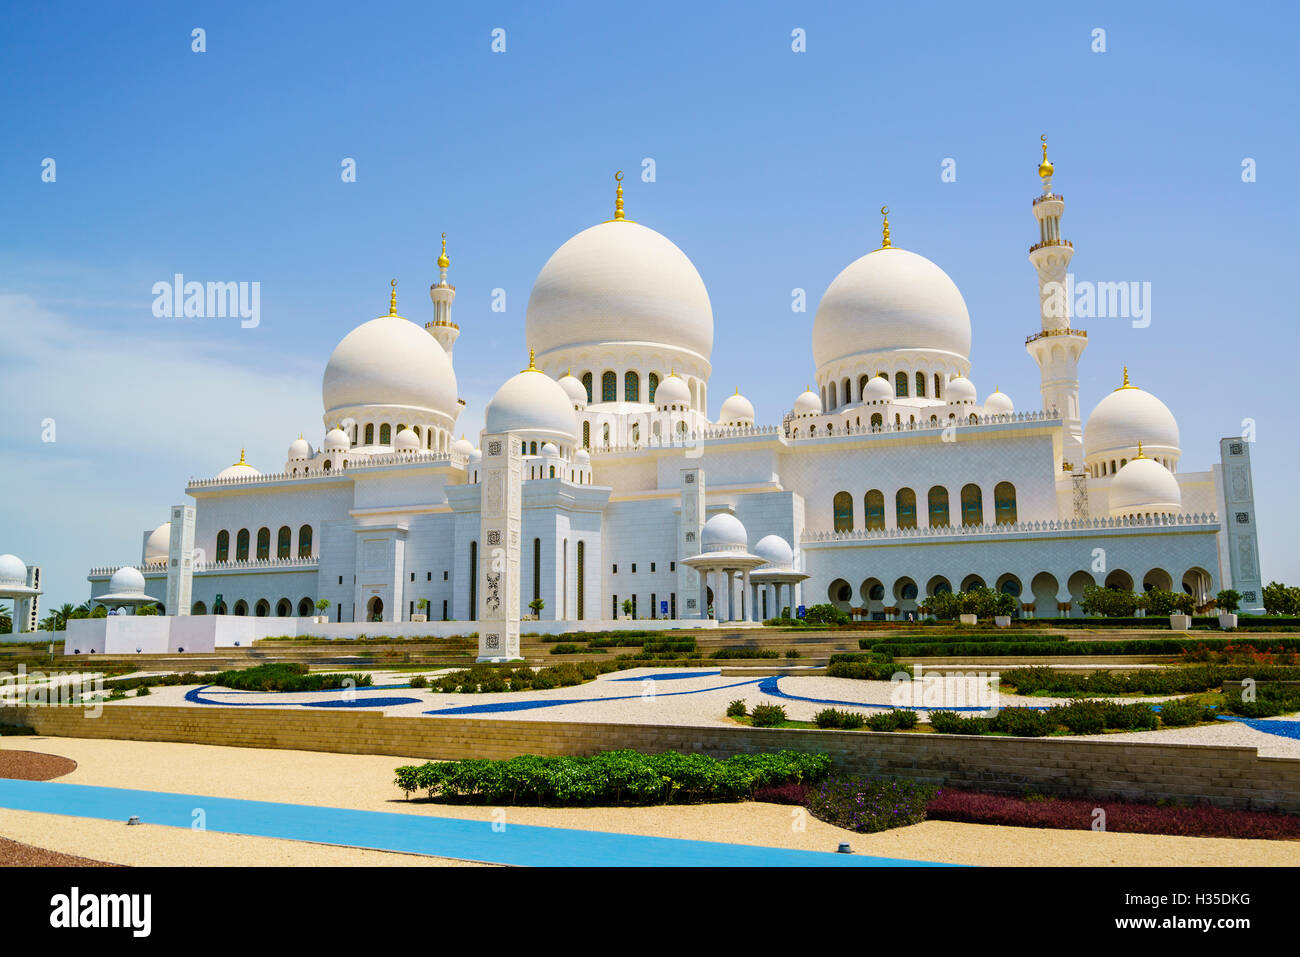 Sheikh Zayed Grand Mosque, Abu Dhabi, United Arab Emirates, Middle East Stock Photo